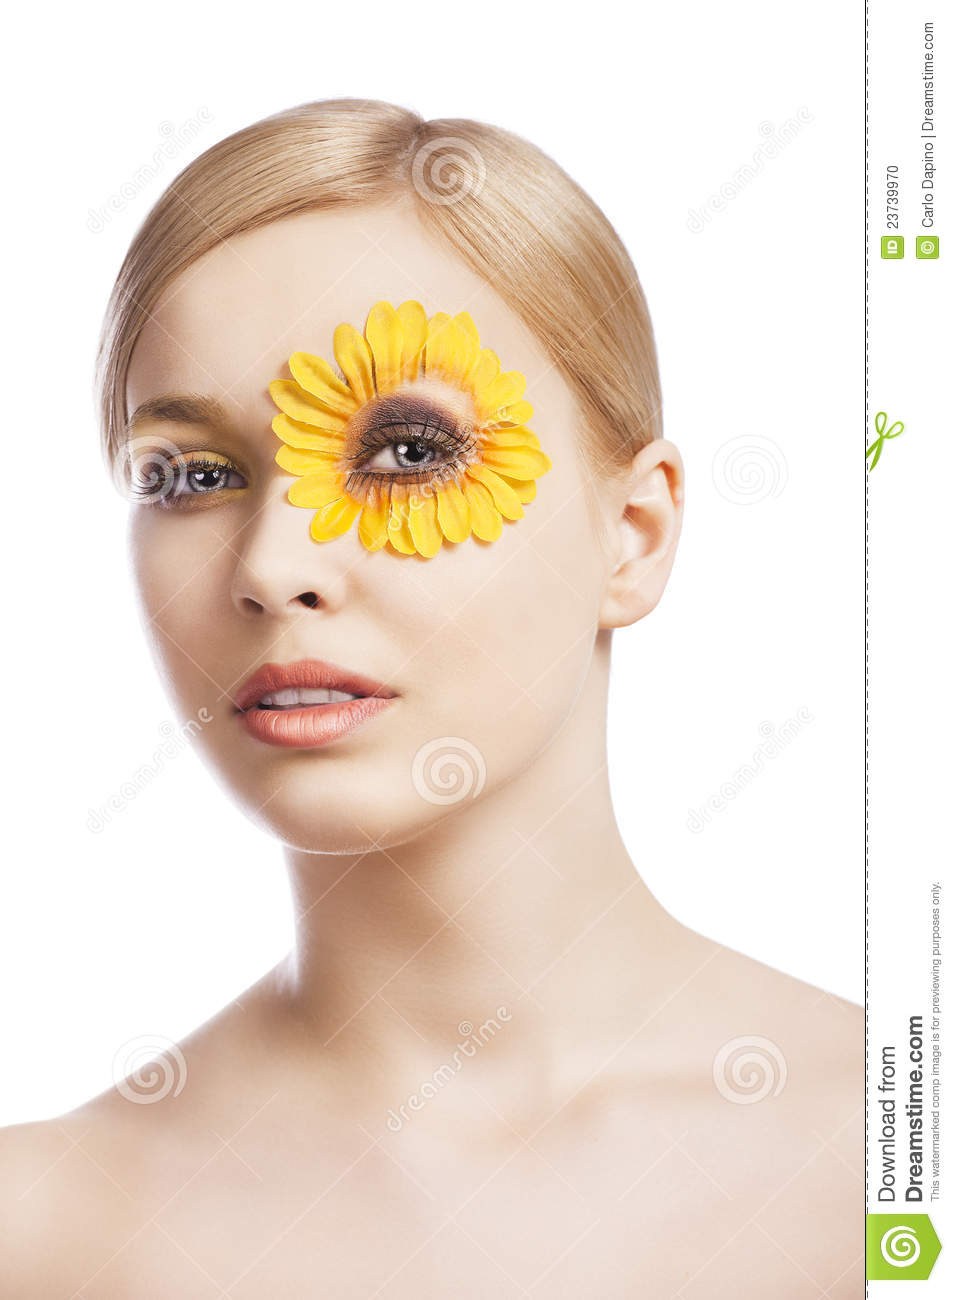 The Floral Makeup, She Looks In To The Lens Stock Photo